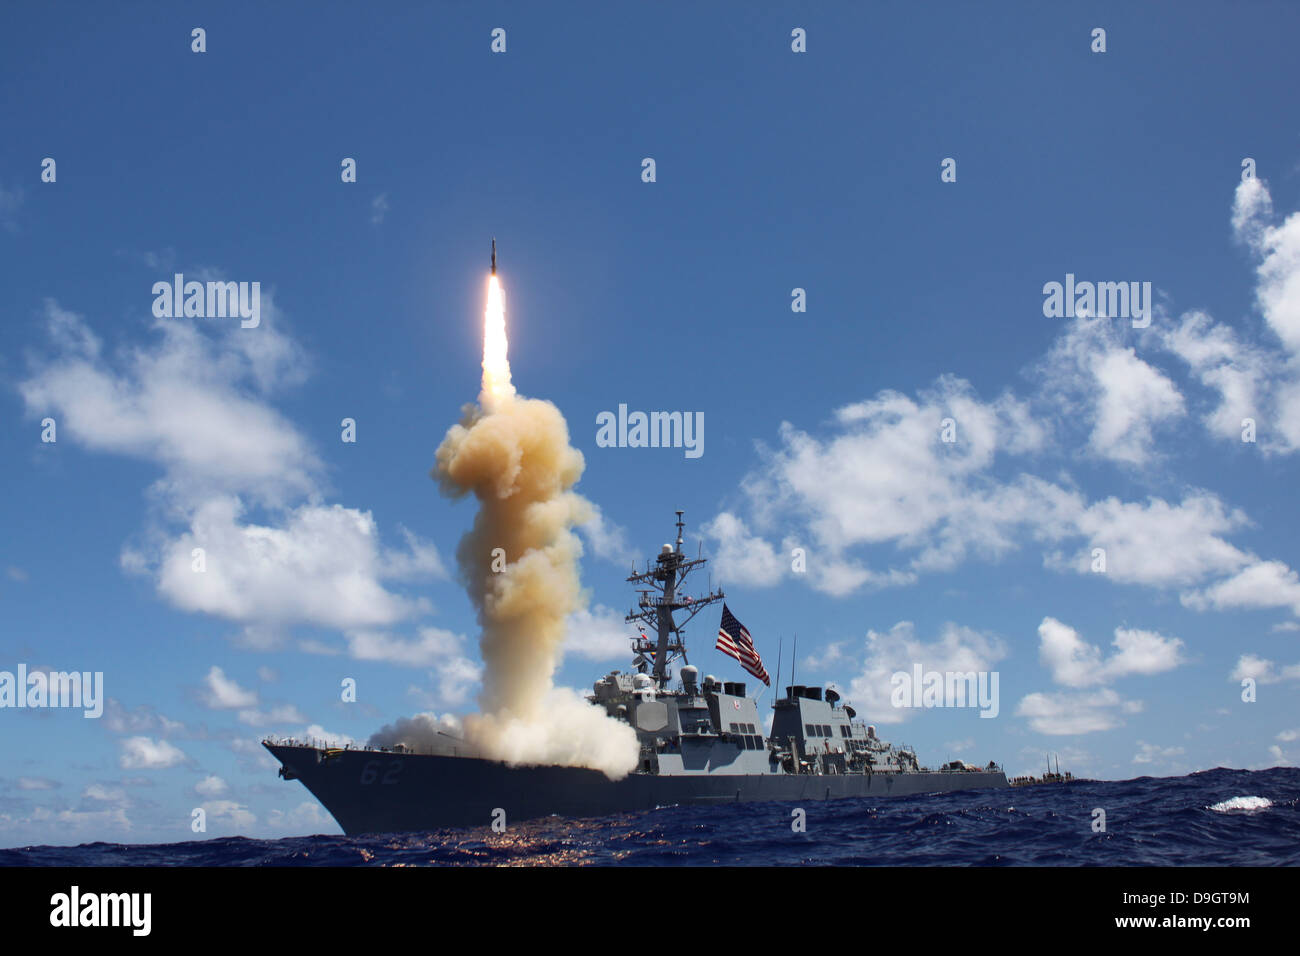 The guided-missile destroyer USS Fitzgerald launches a Standard Missile-3. - Stock Image